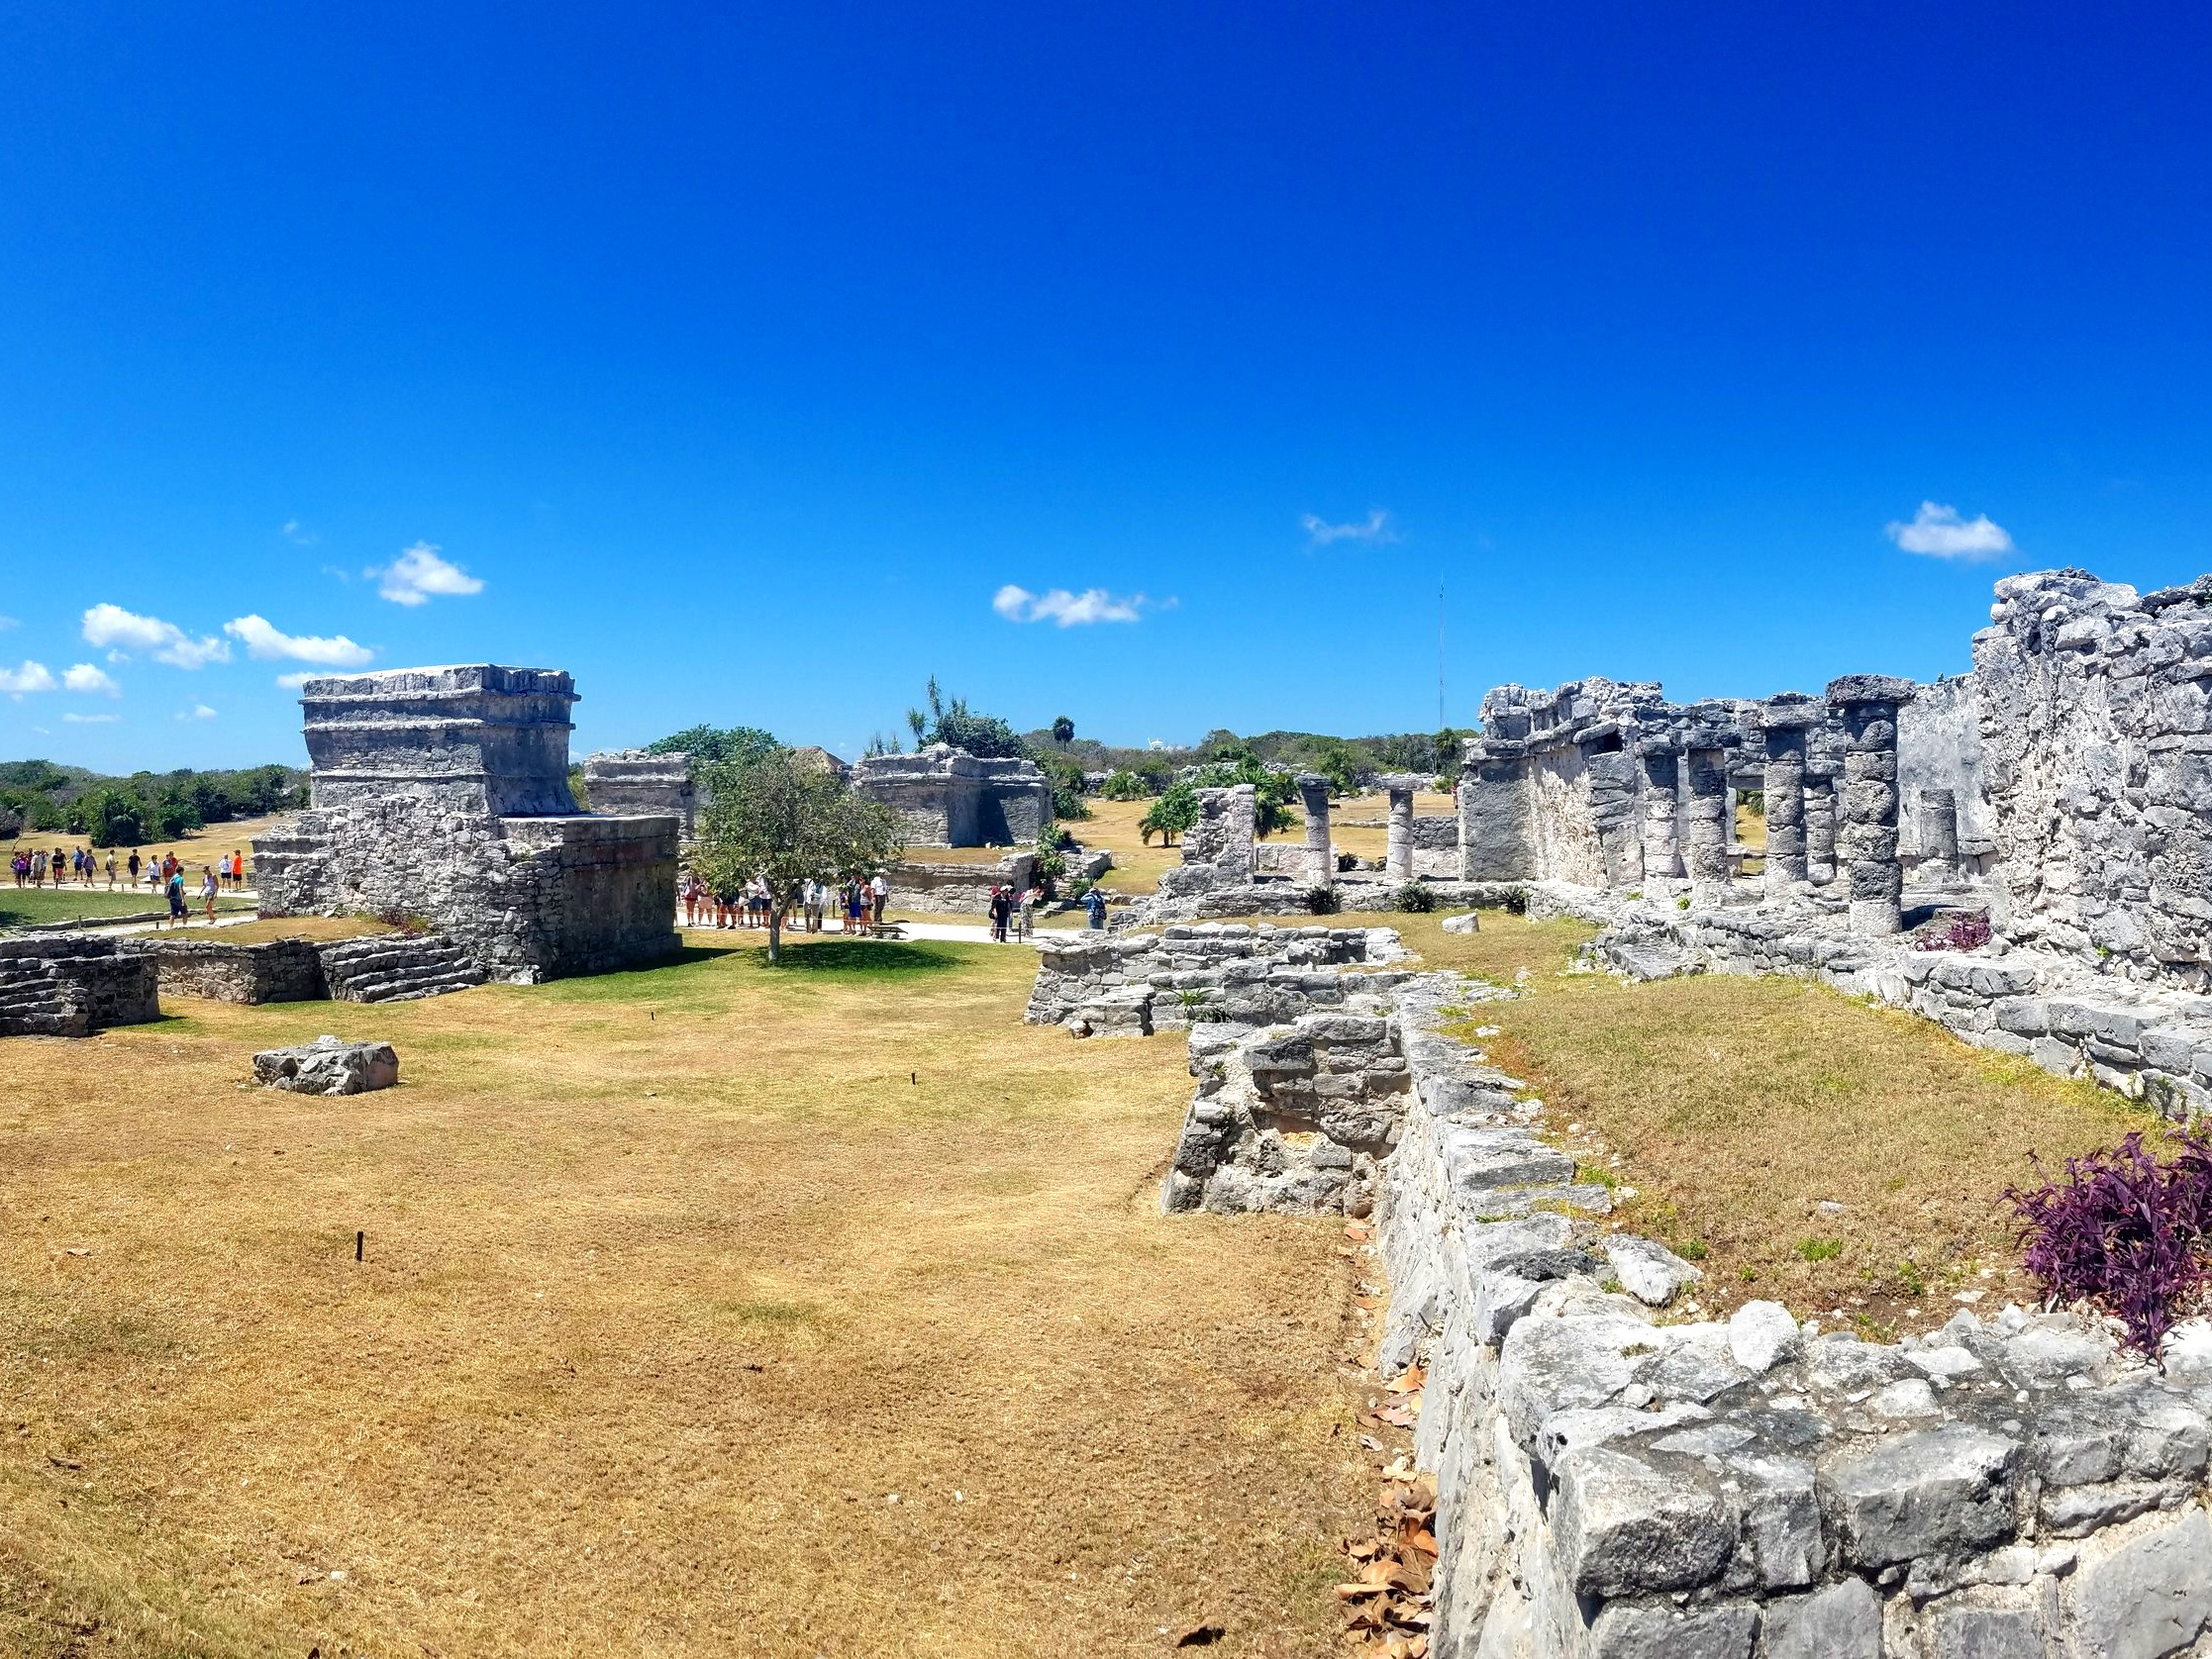 The Maya ruins of Tulum